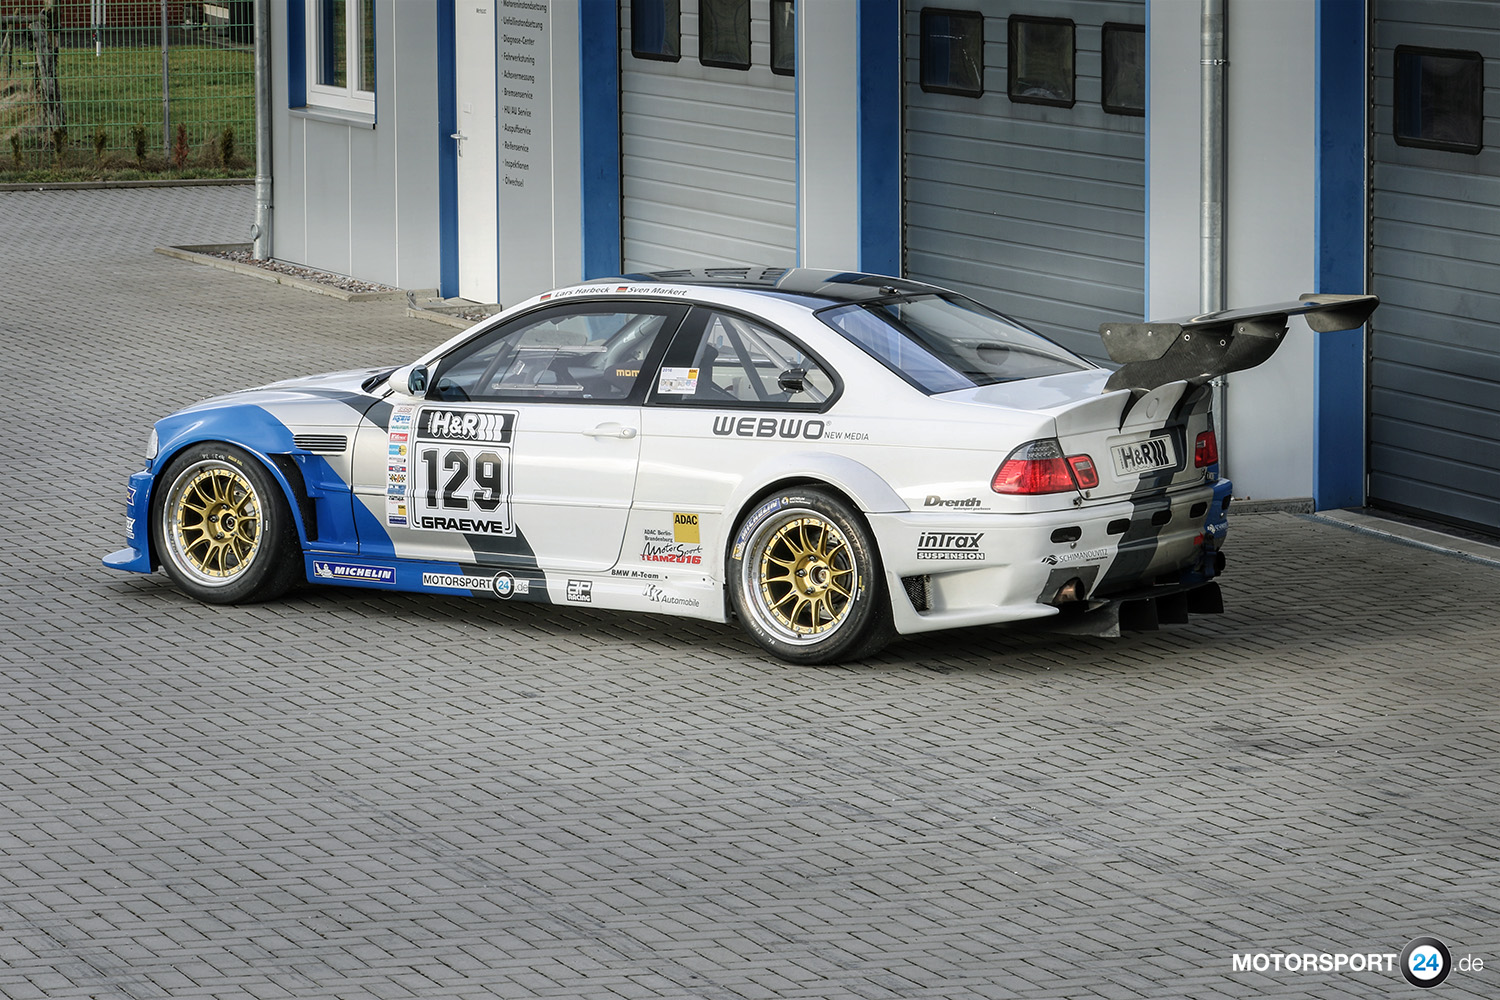 FOR SALE: BMW M3 E46 GTR Rennwagen | BMW M Tuning Teile ...